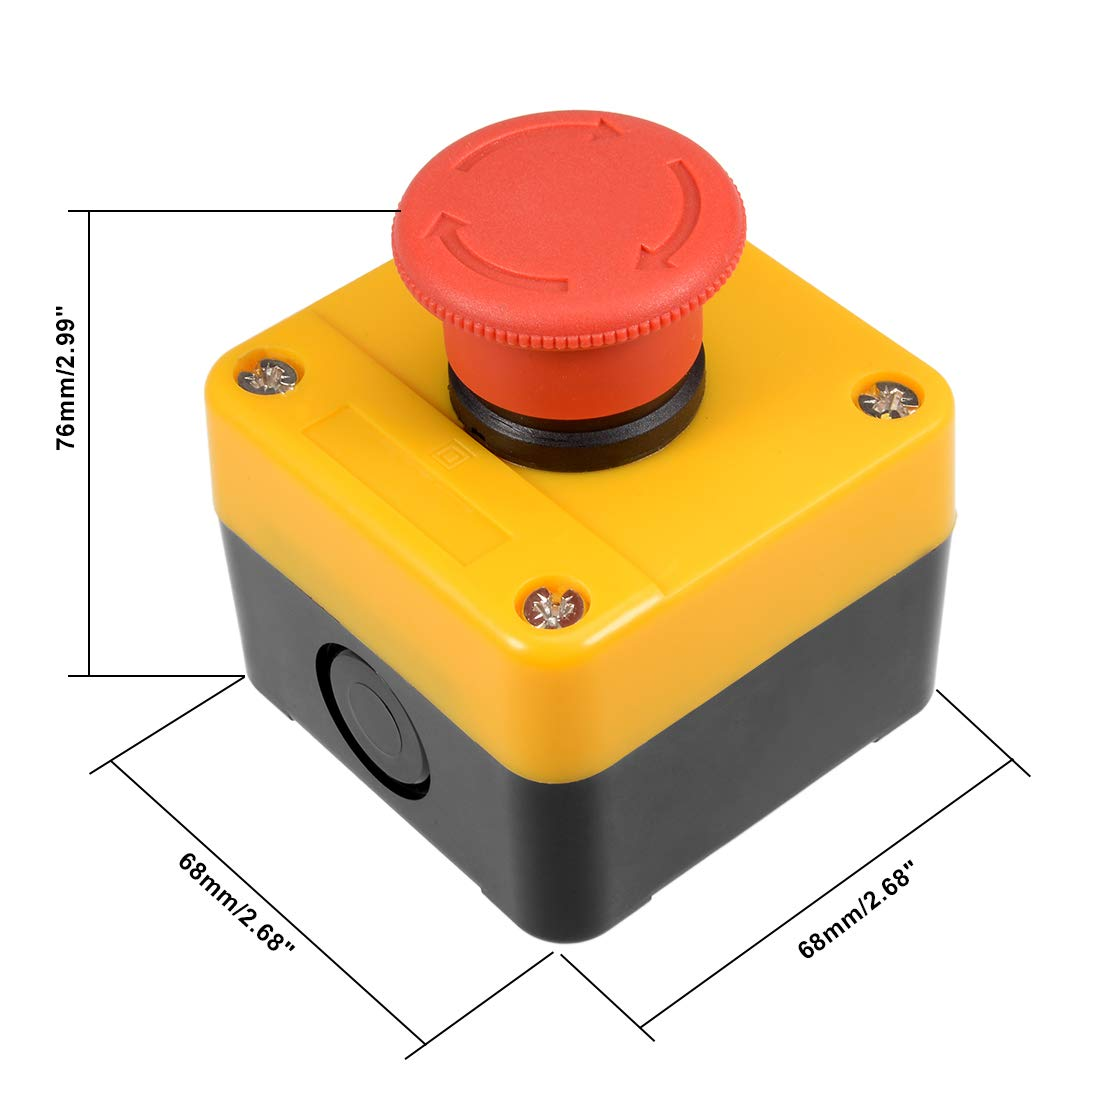 uxcell Push Button Switch Station Key Lock Select Switch Station 2 Position 660V 10A